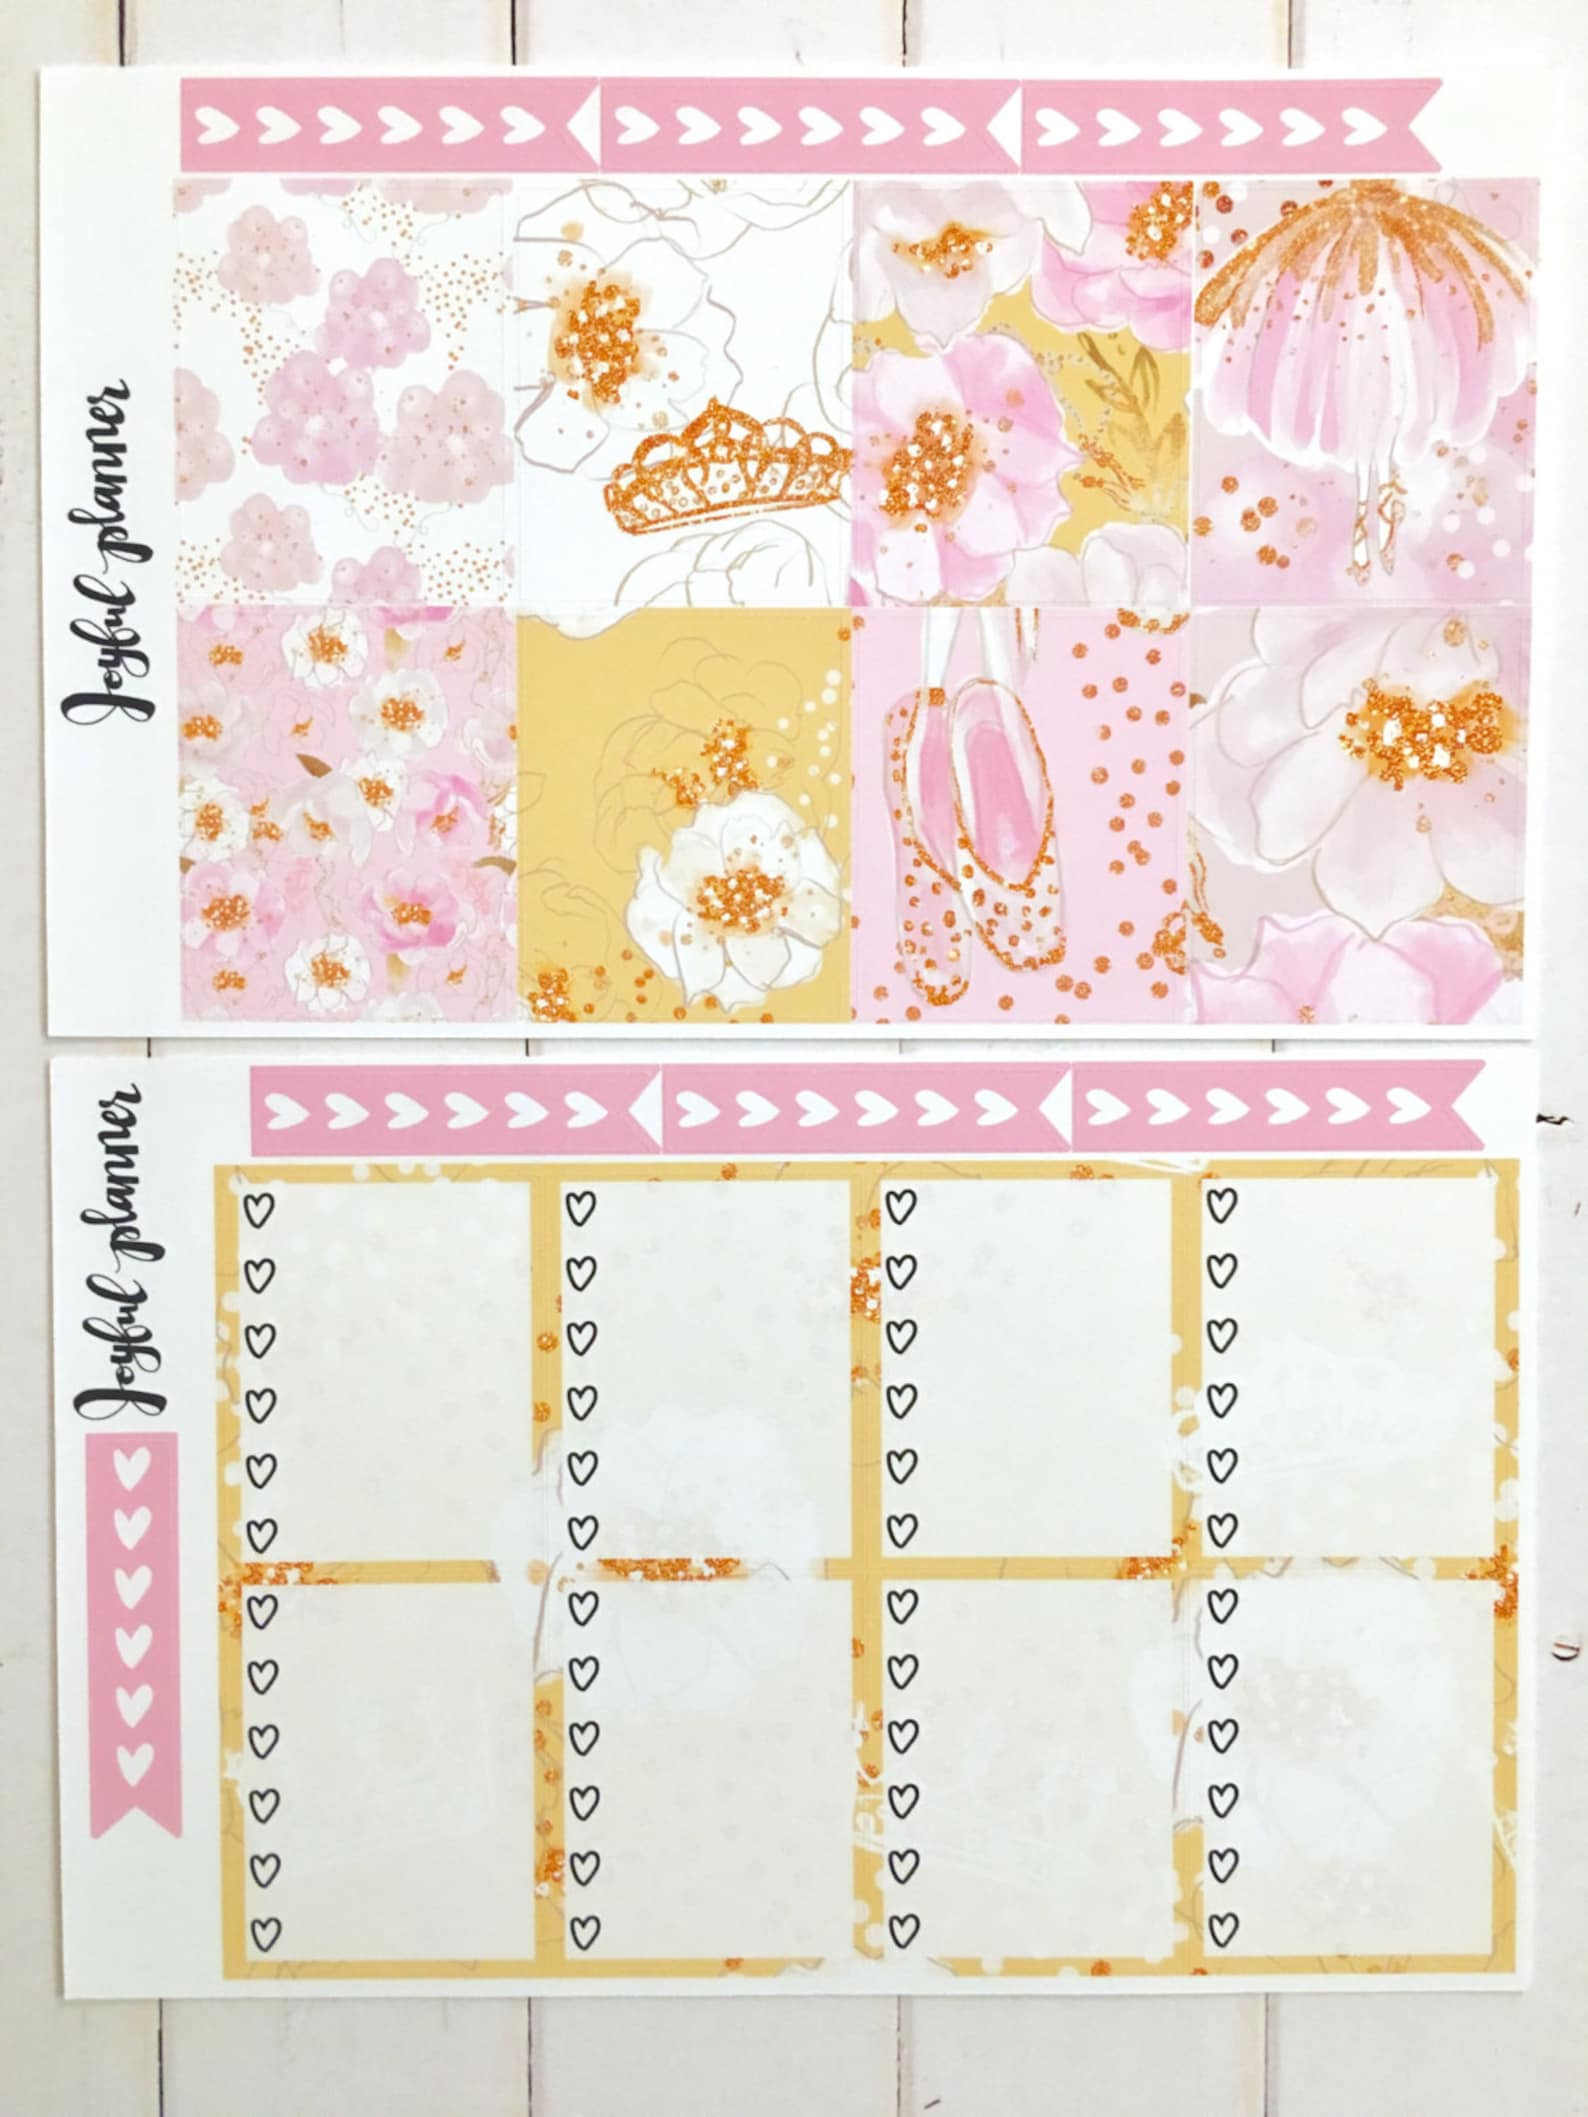 ballet planner stickers weekly kit for erin condren life planner eclp and mambi happy planner ready to ship!